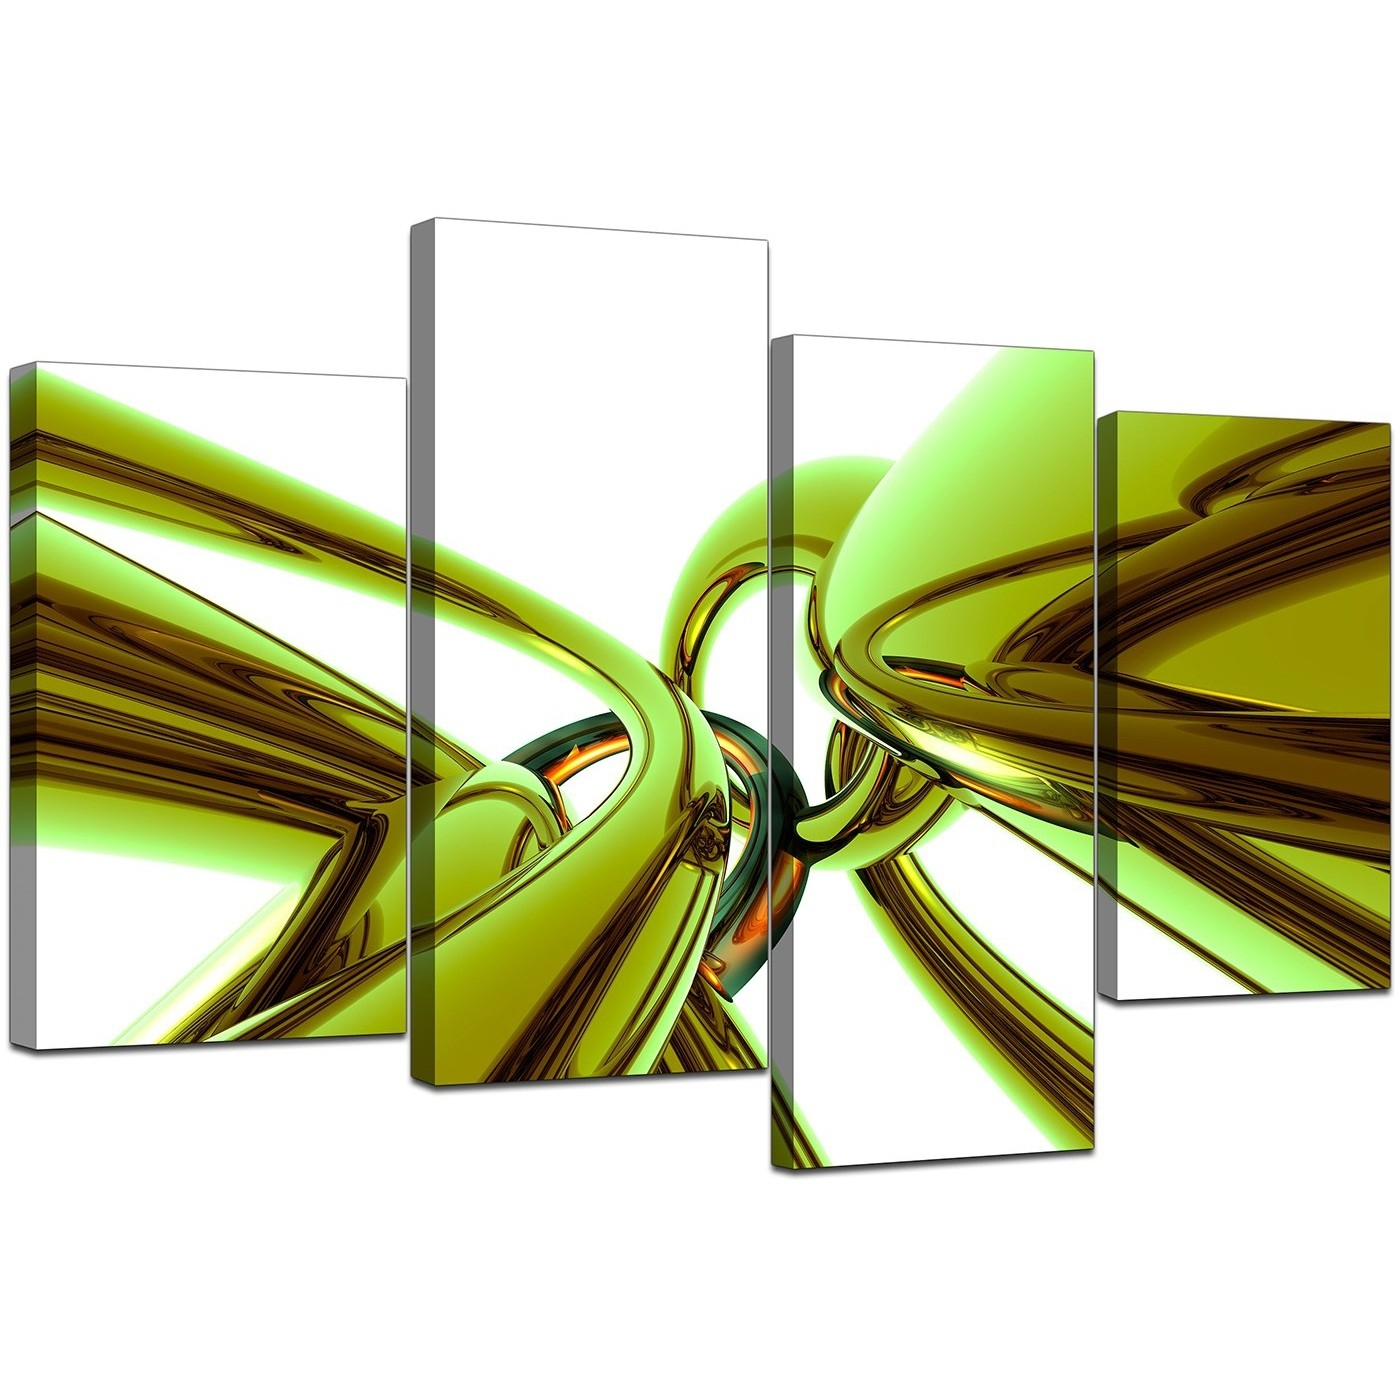 Abstract Canvas Wall Art In Green For Your Living Room – Set Of 4 For Most Popular Green Wall Art (View 2 of 20)